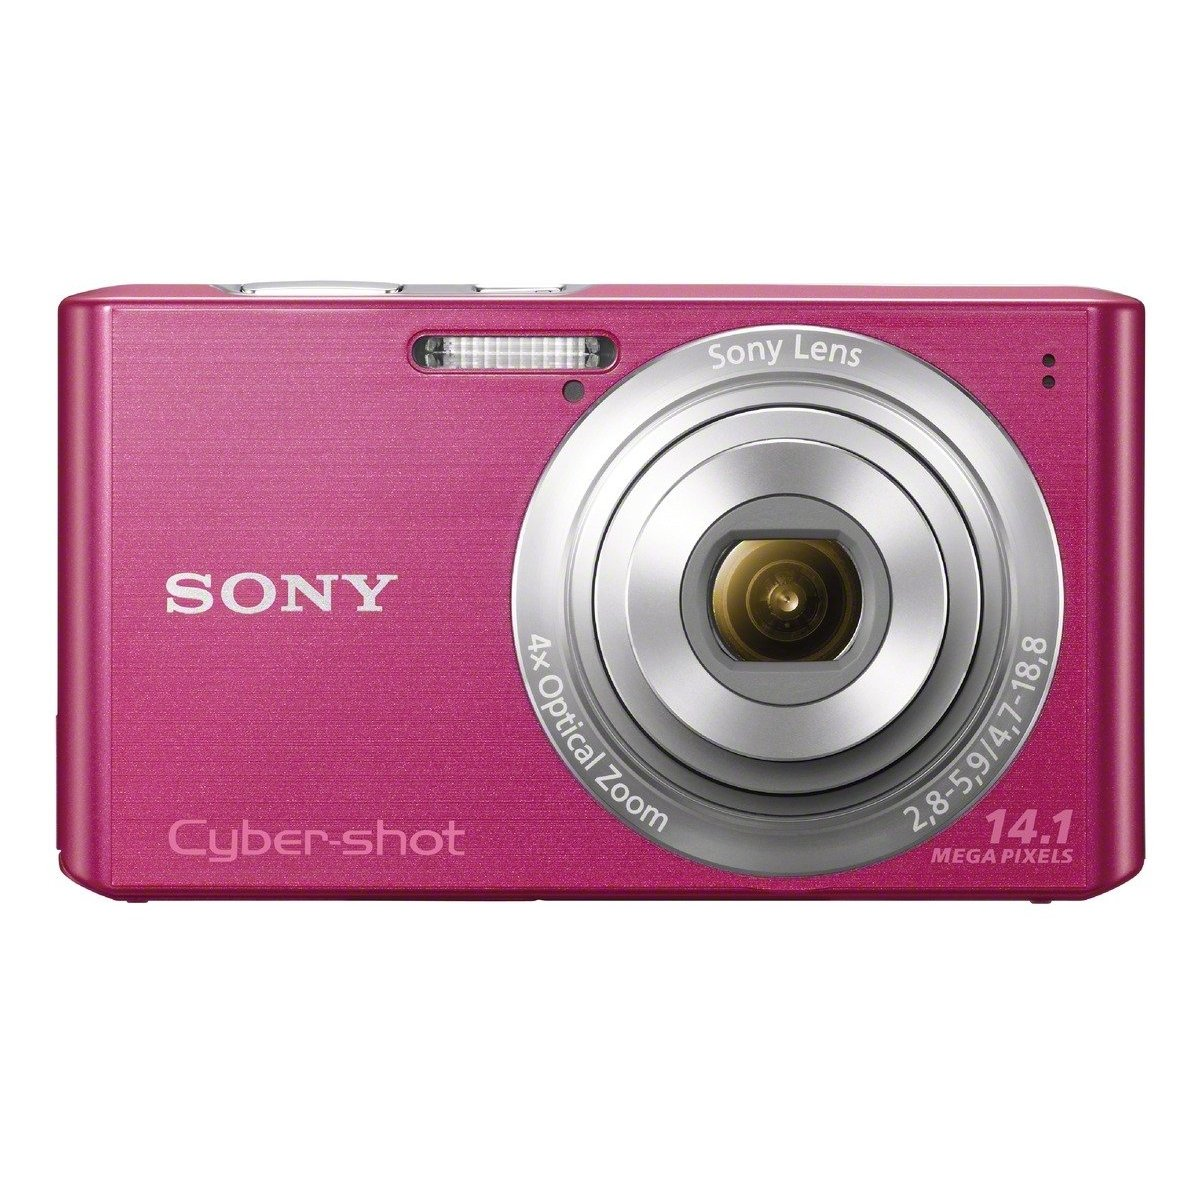 Sony Cyber-shot DSC-W610 14.1 MP Digital Camera with 4x Optical Zoom and 2.7-Inch LCD (Pink)